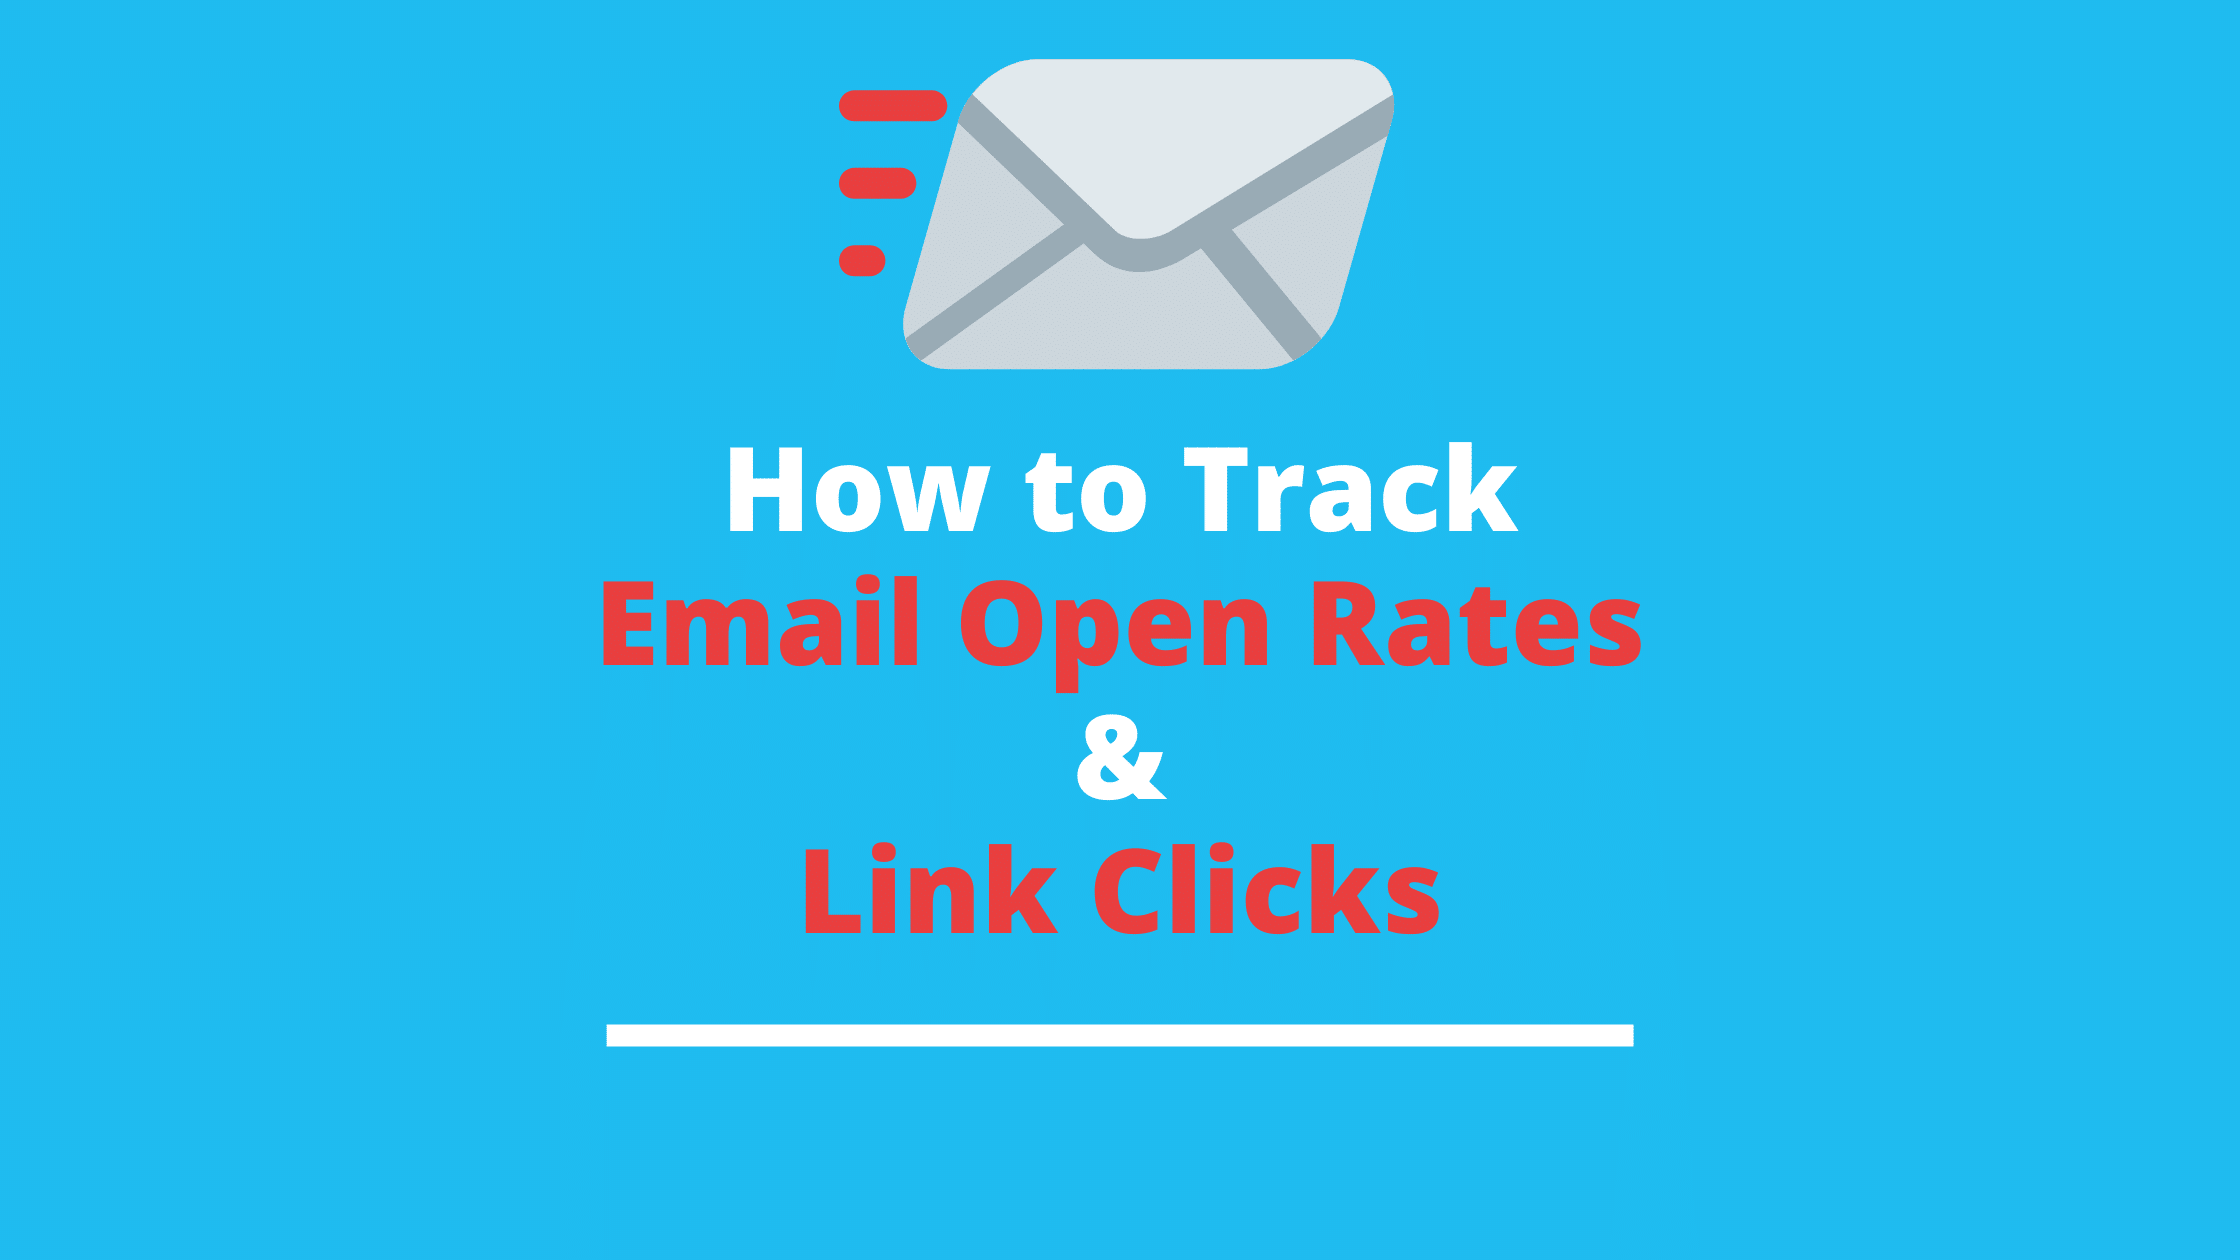 Email Open Rates and Link Clicks